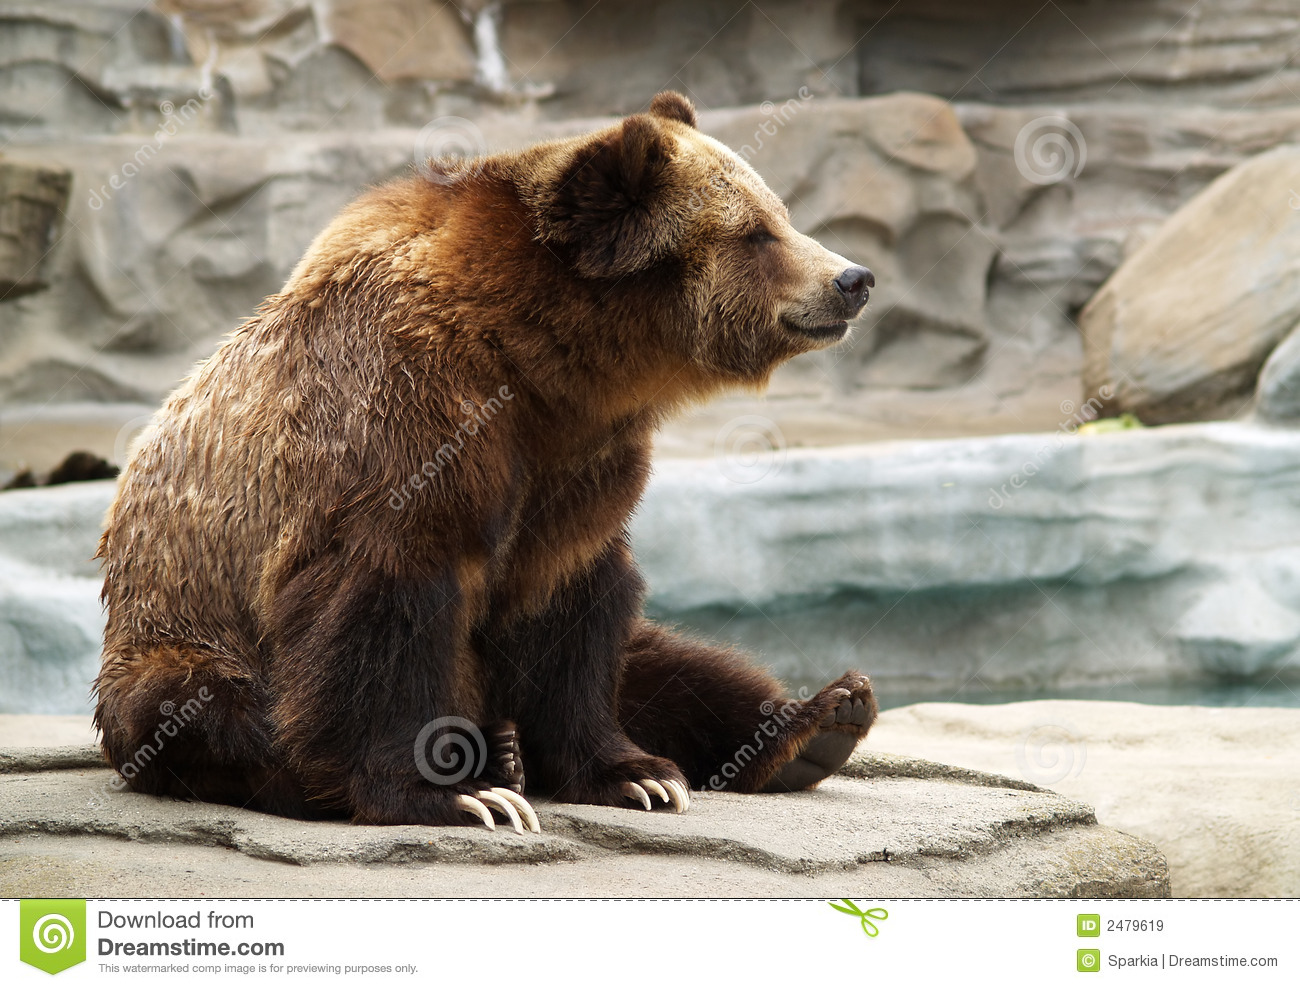 Grizzly bear sitting up - photo#12